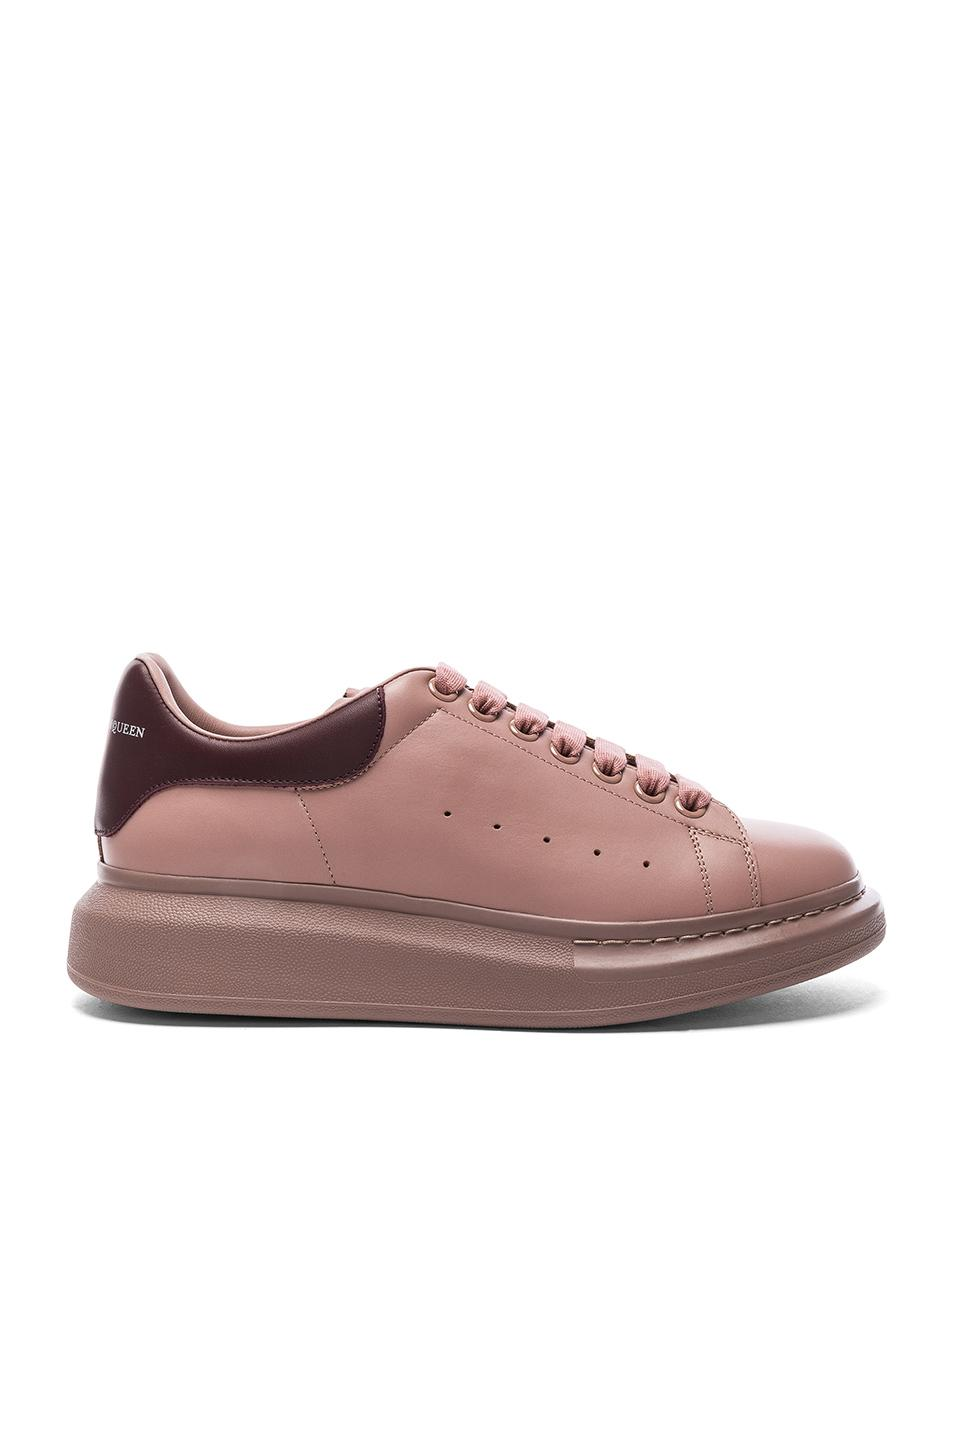 20e46bcb74ca01 Lyst - Alexander mcqueen Leather Platform Low Top Sneakers .